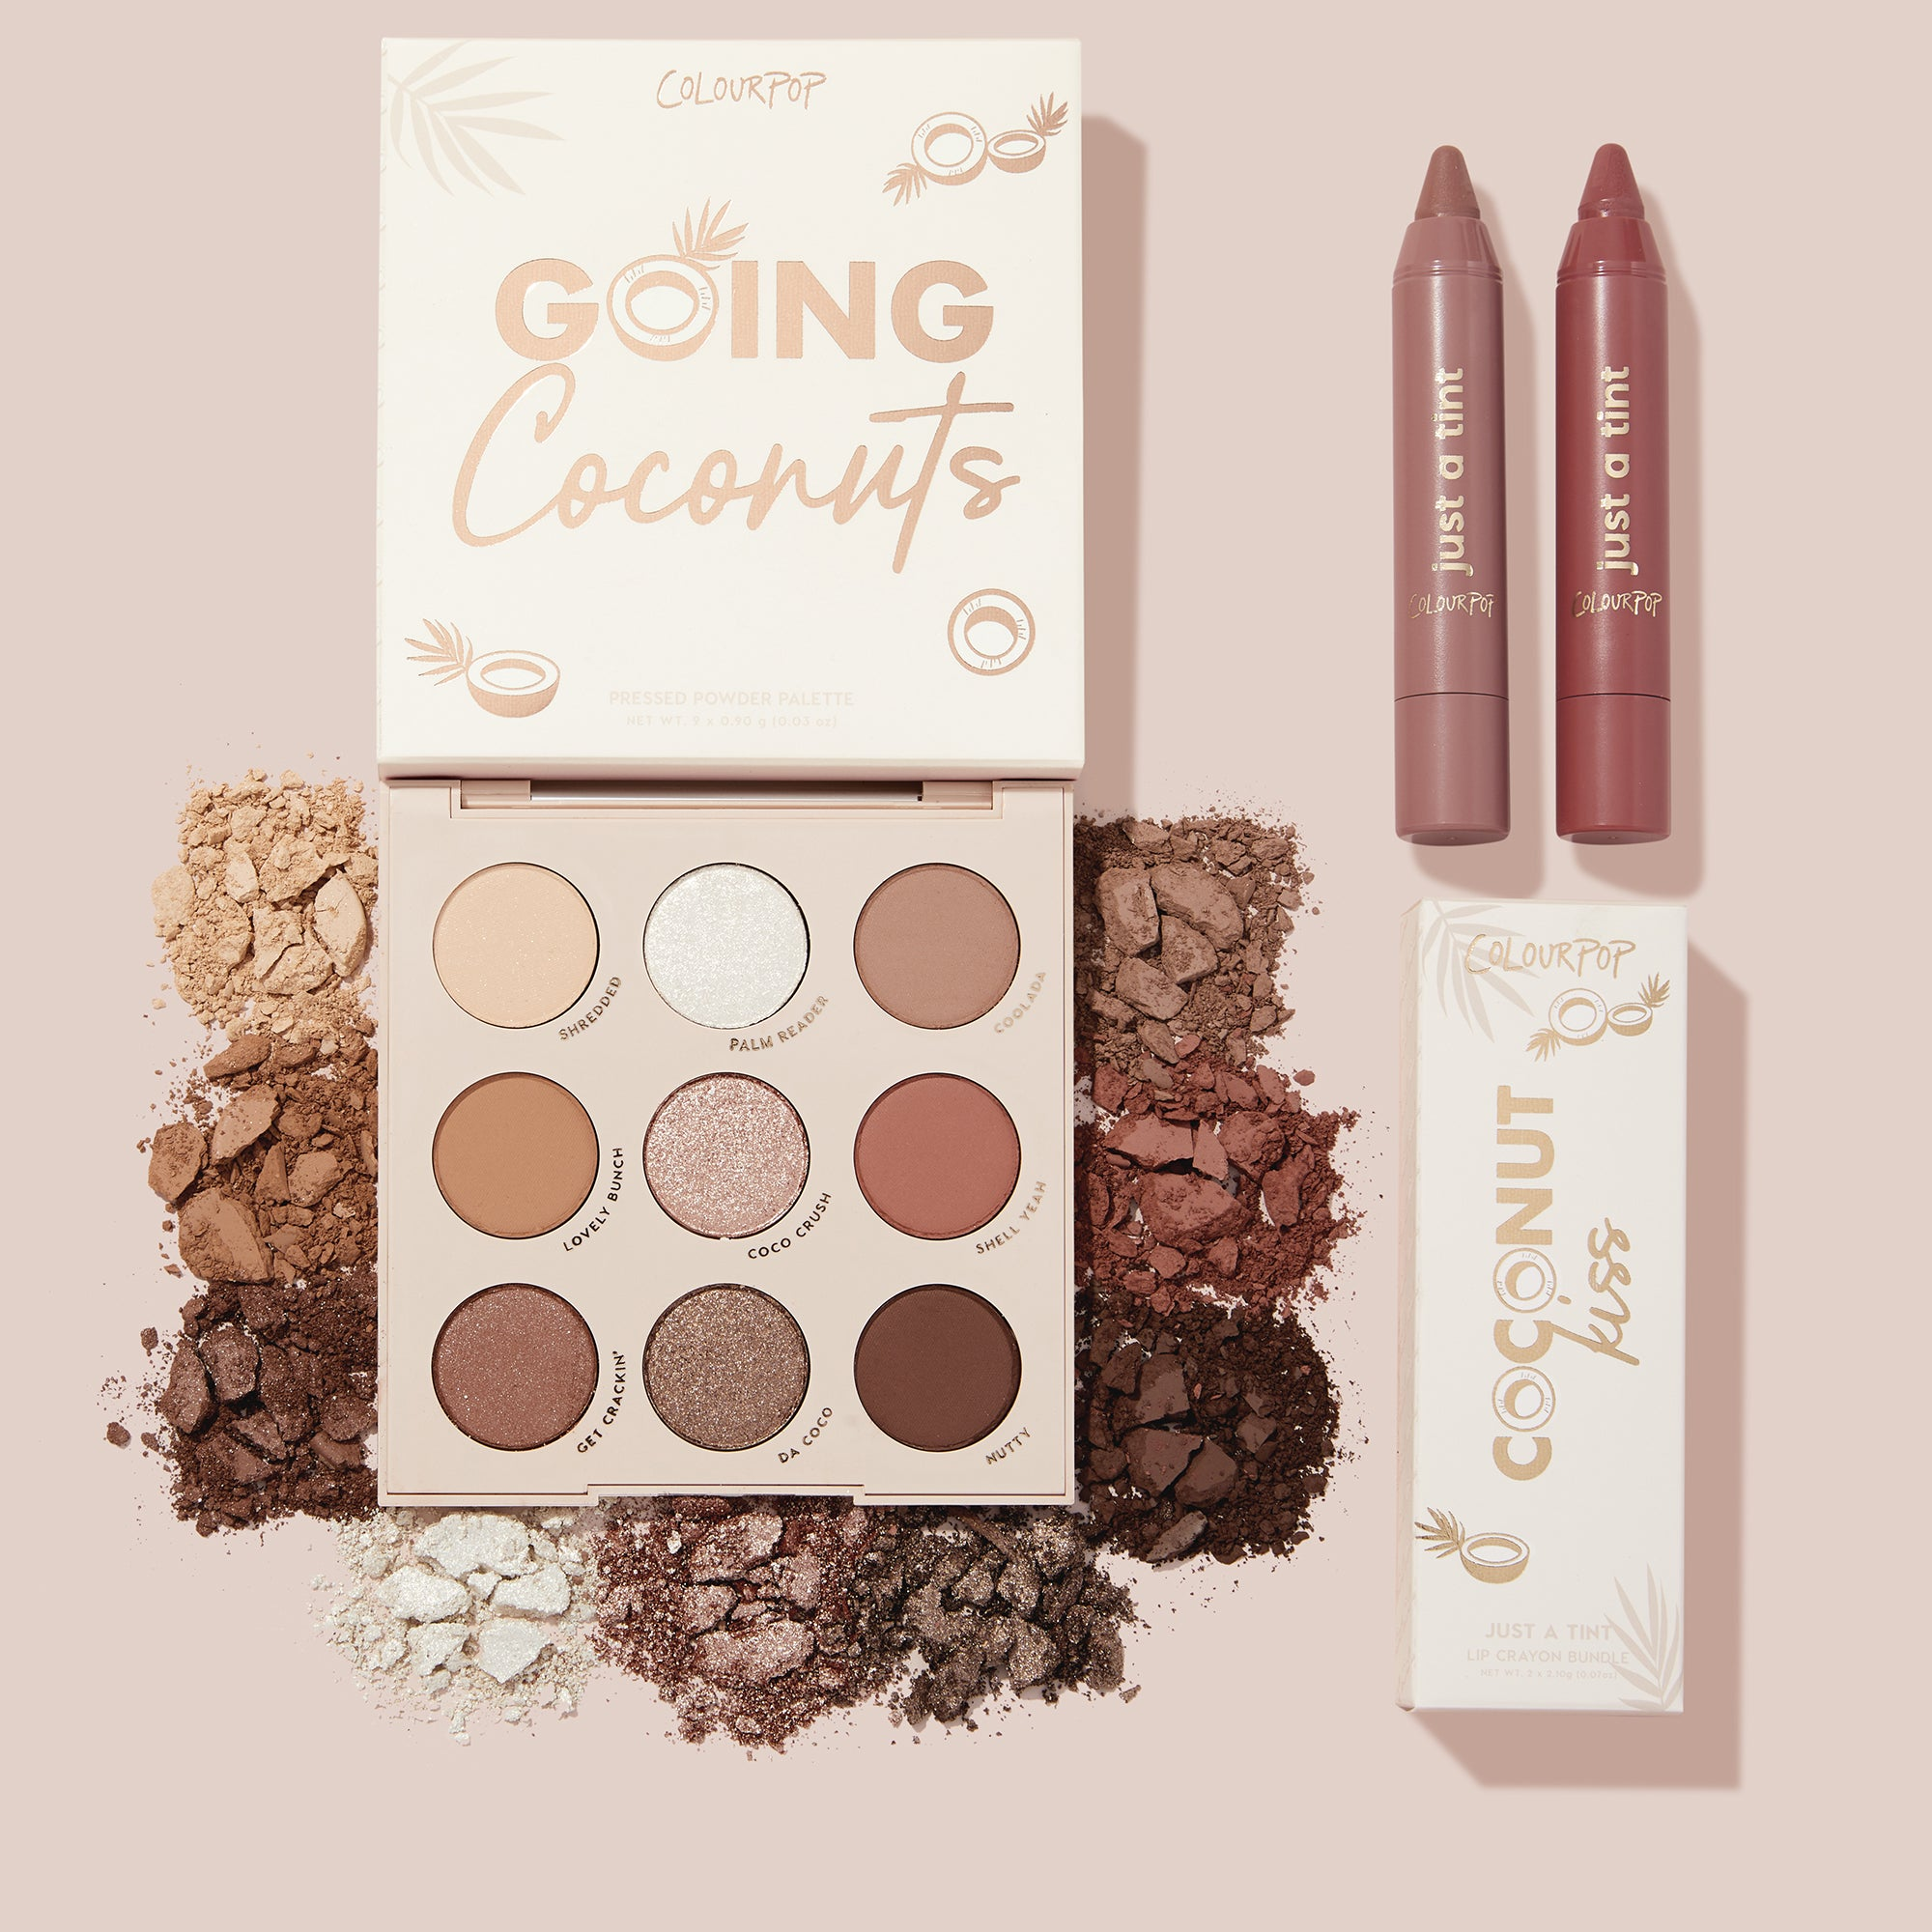 Made in the Shade includes a neutral palette with sheer nude lips